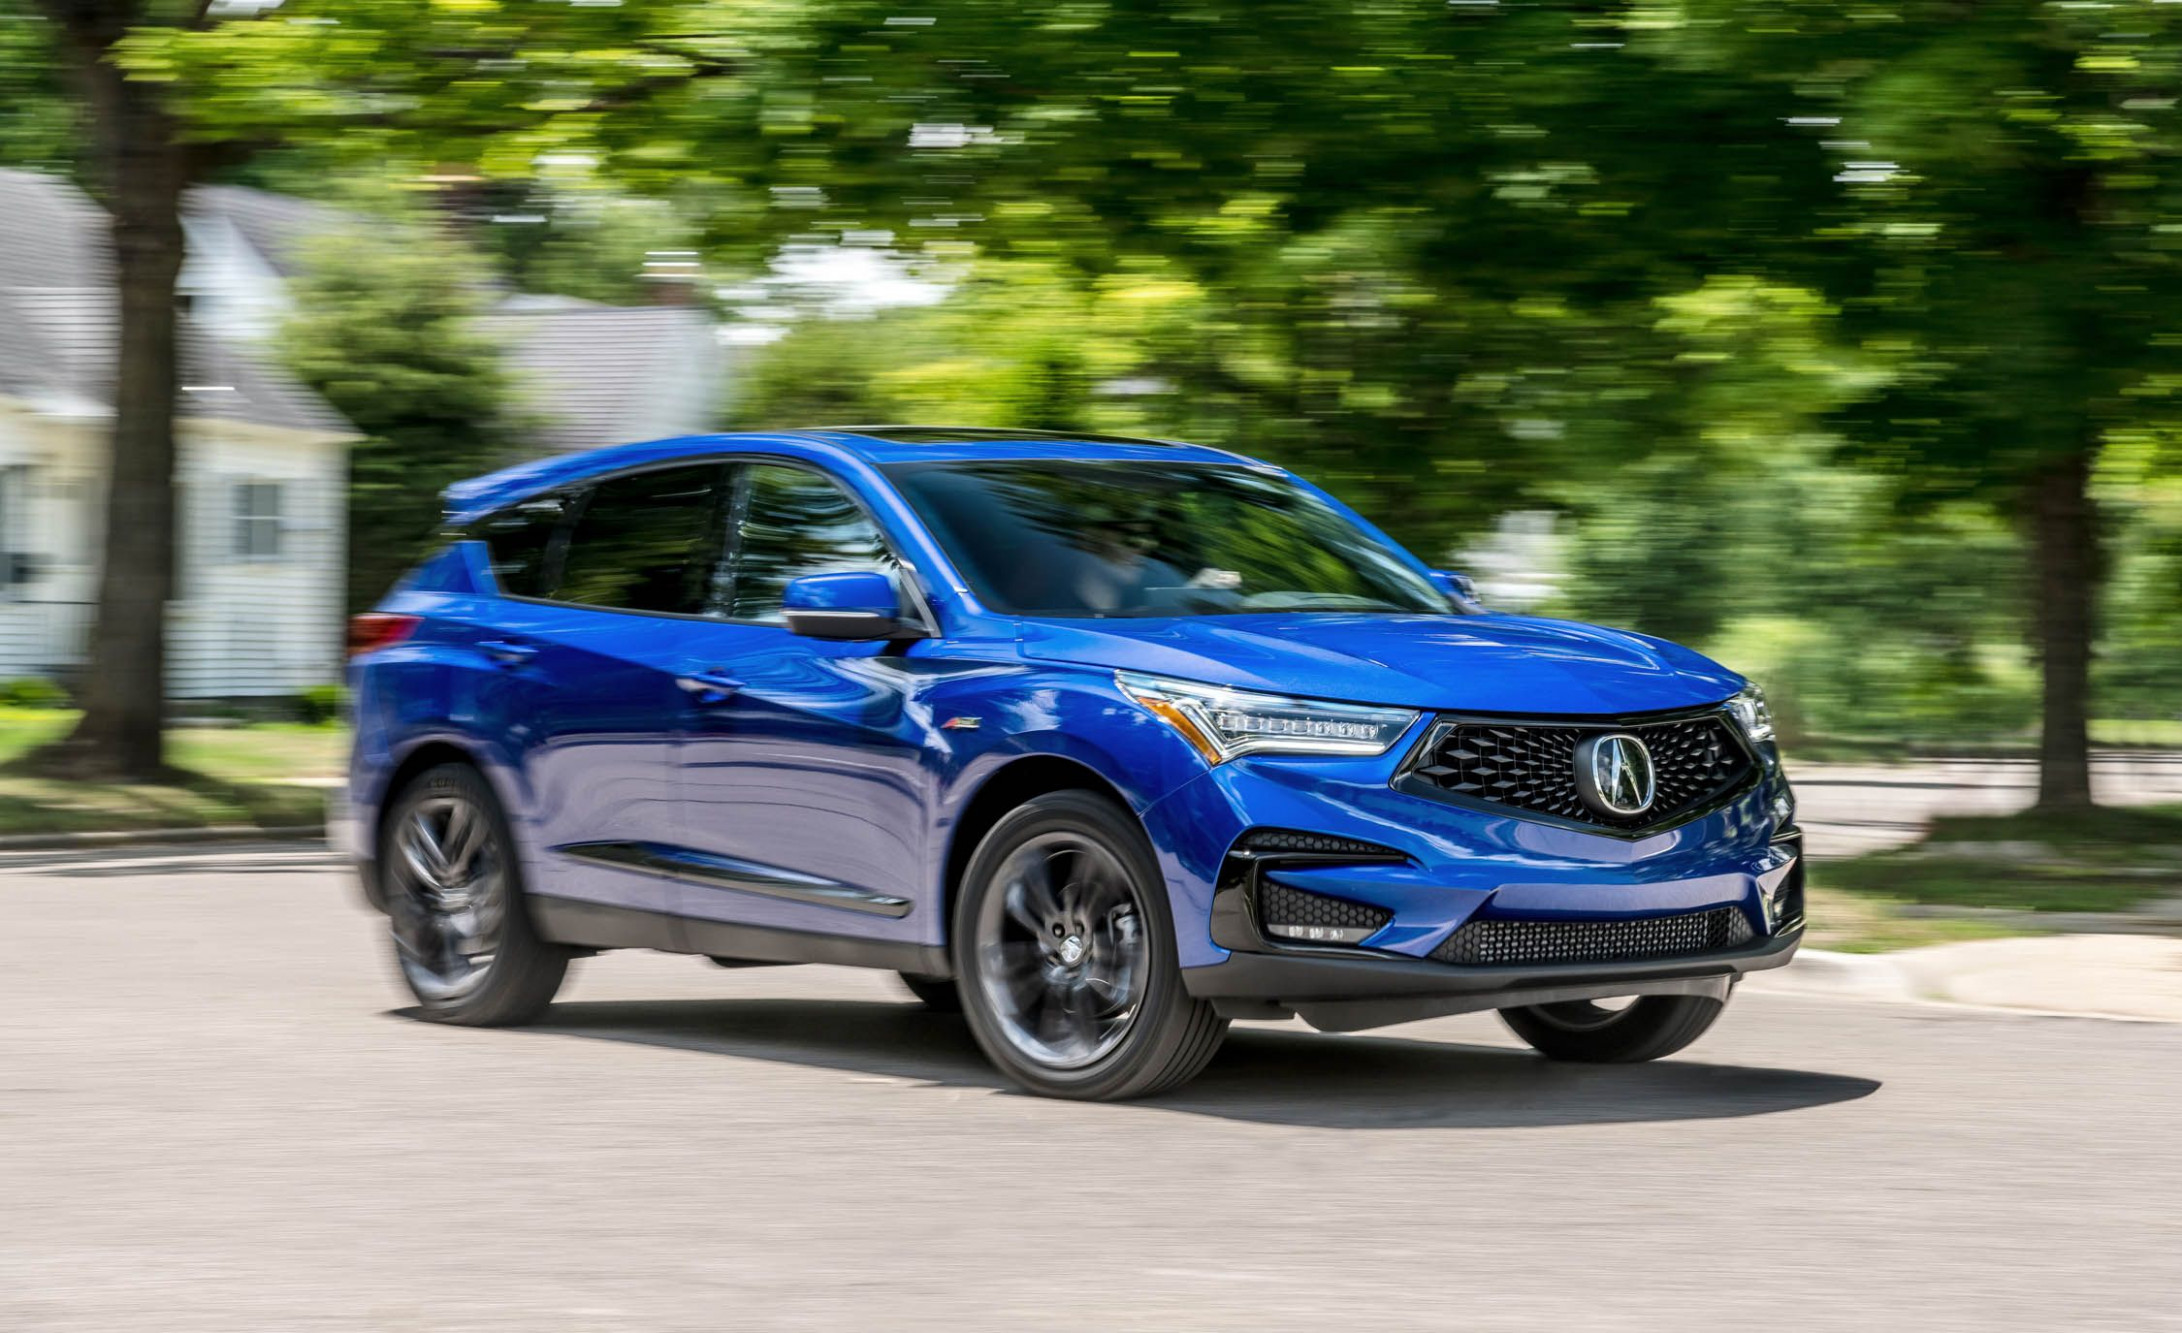 9 Acura RDX Review, Pricing, and Specs - 2020 acura rdx quarter mile